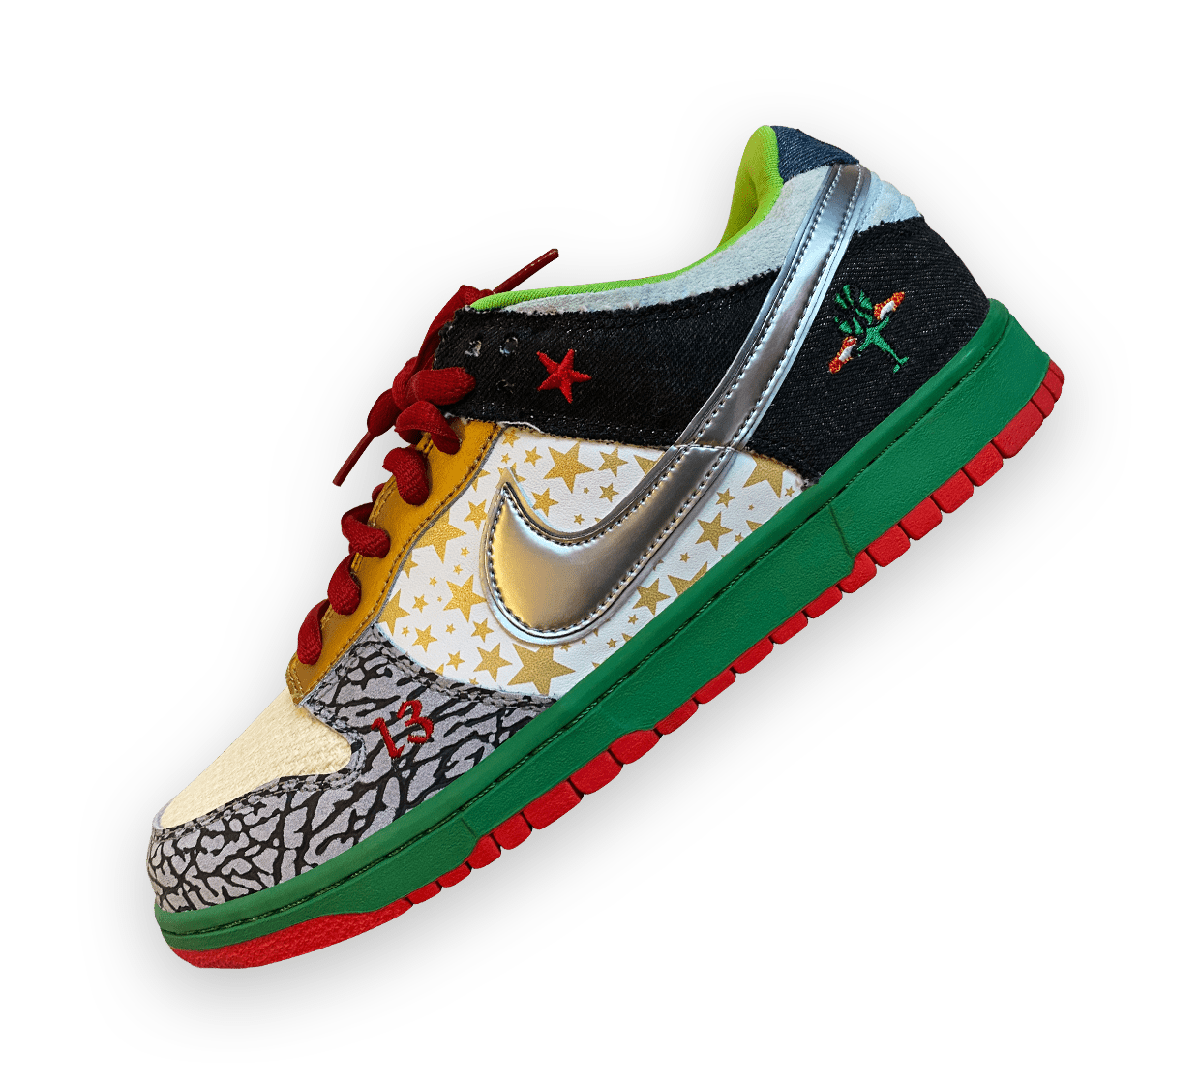 Nike SB Dunk Low 'What The Dunk' Image